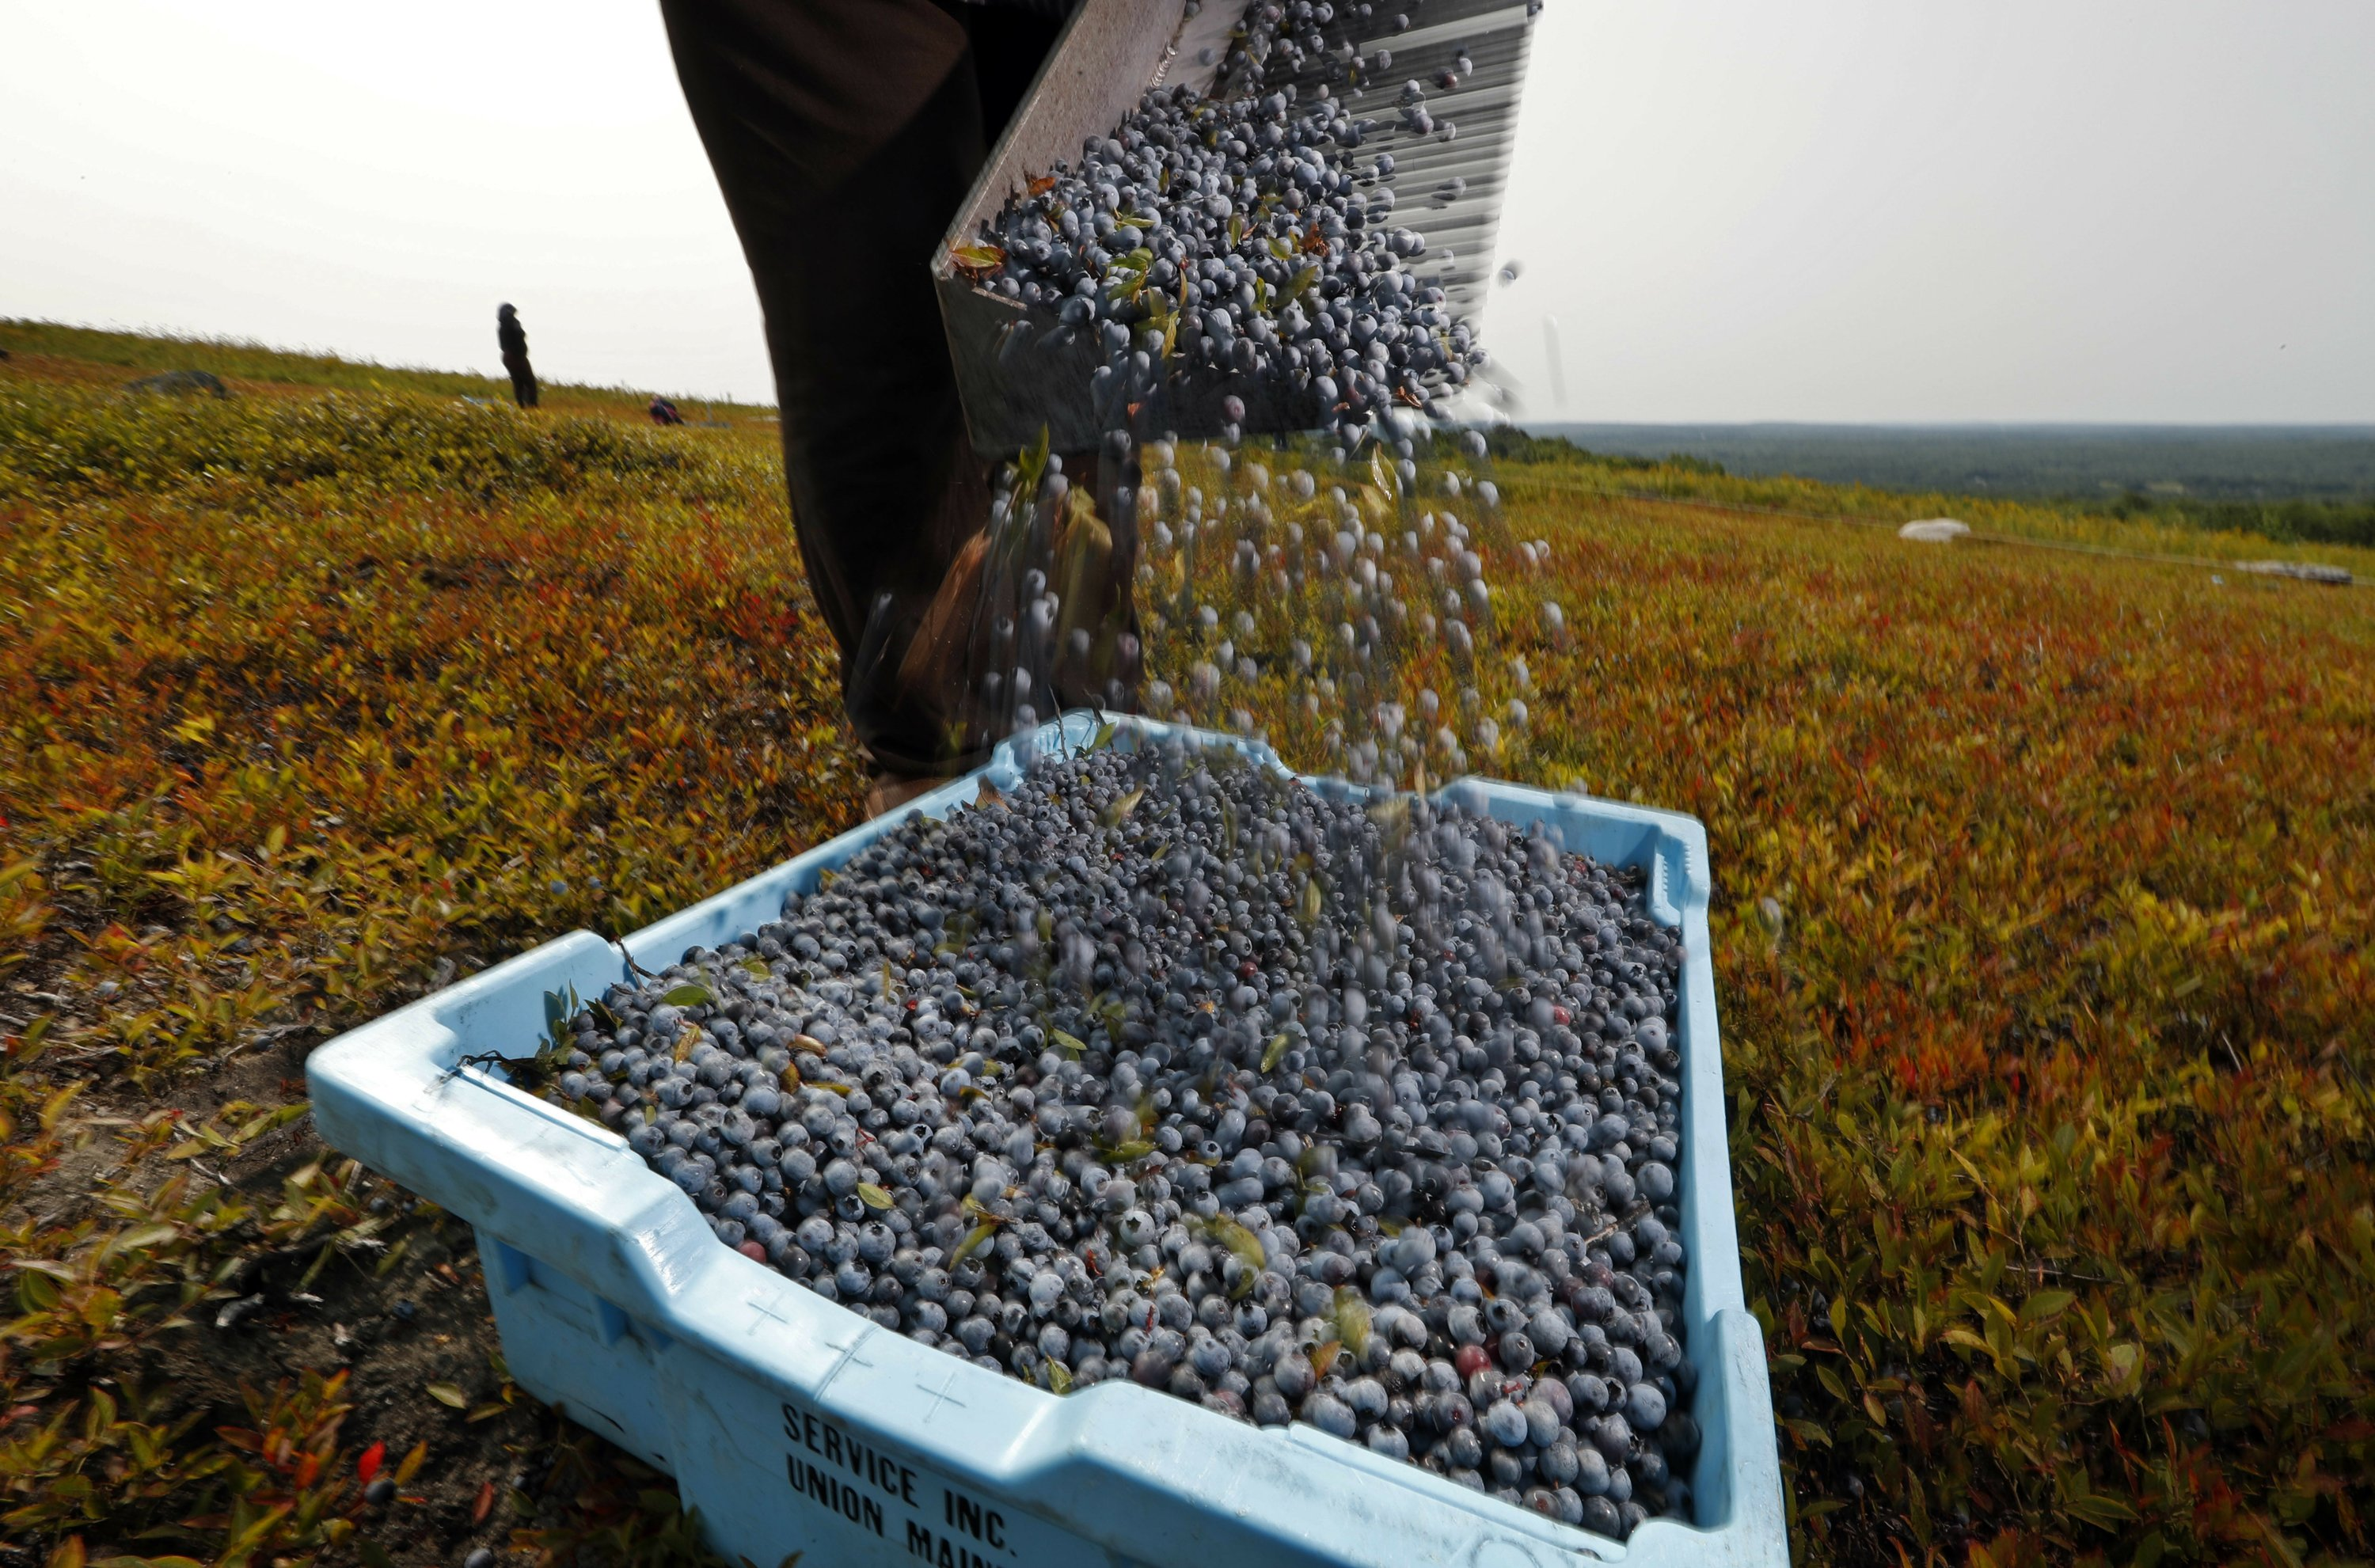 With industry in decline, wild blueberries sing the blues